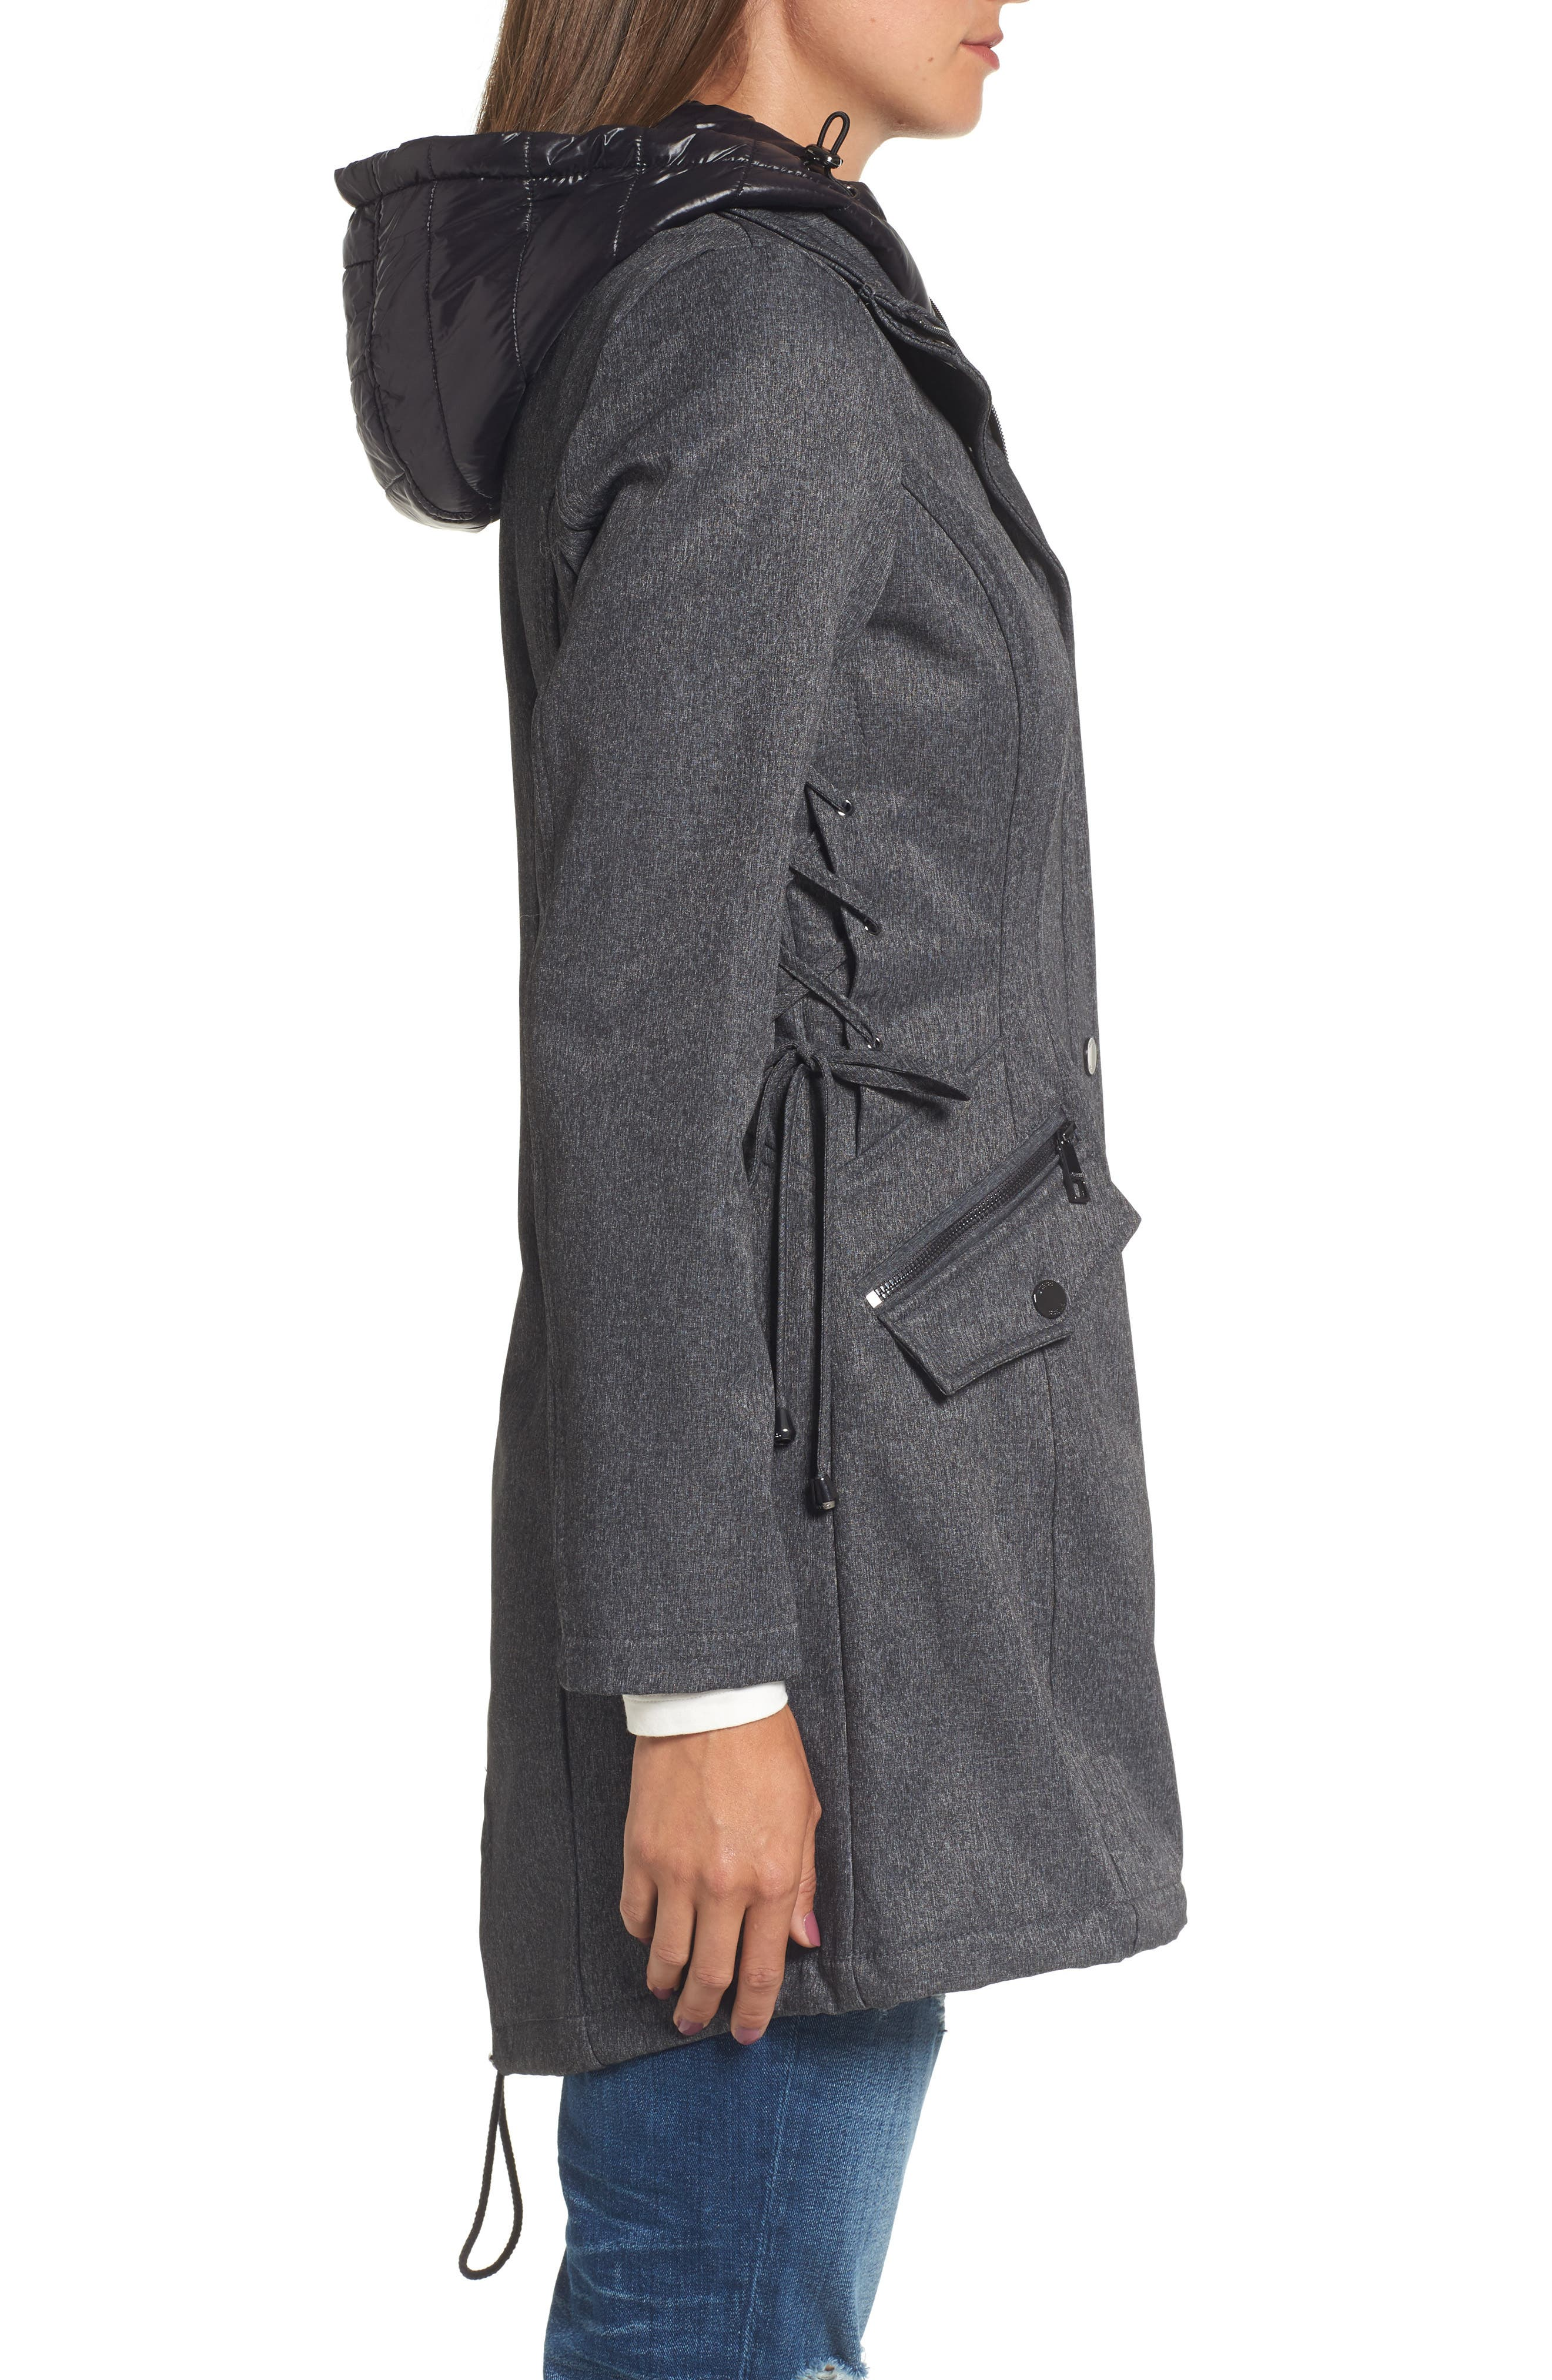 Anorak with Detachable Hooded Vest,                             Alternate thumbnail 3, color,                             Grey Melange